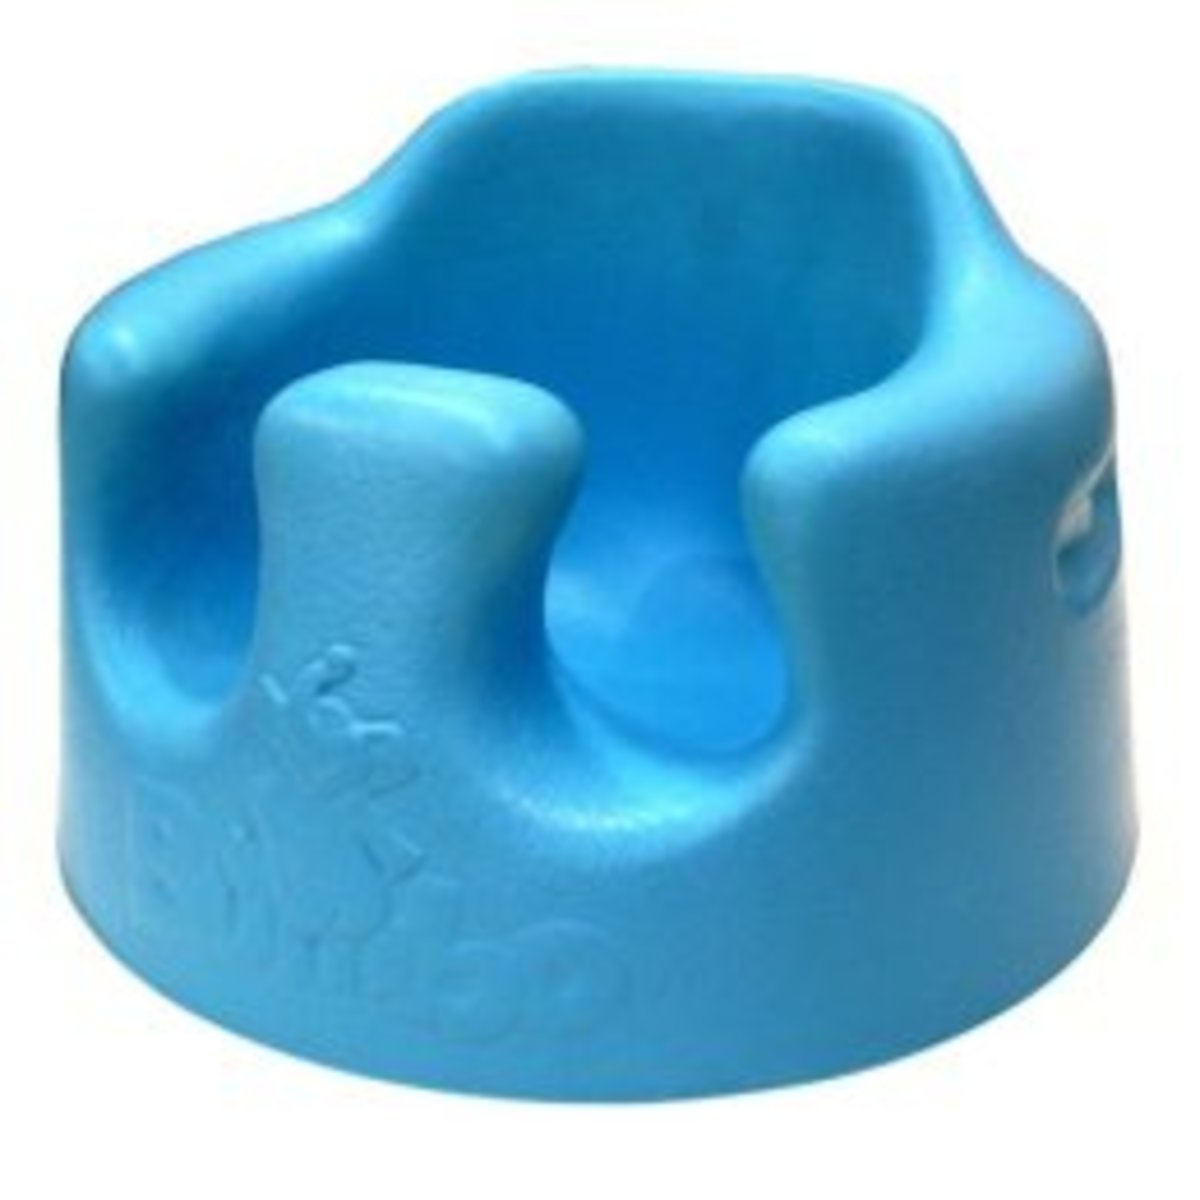 A Bumbo Seat